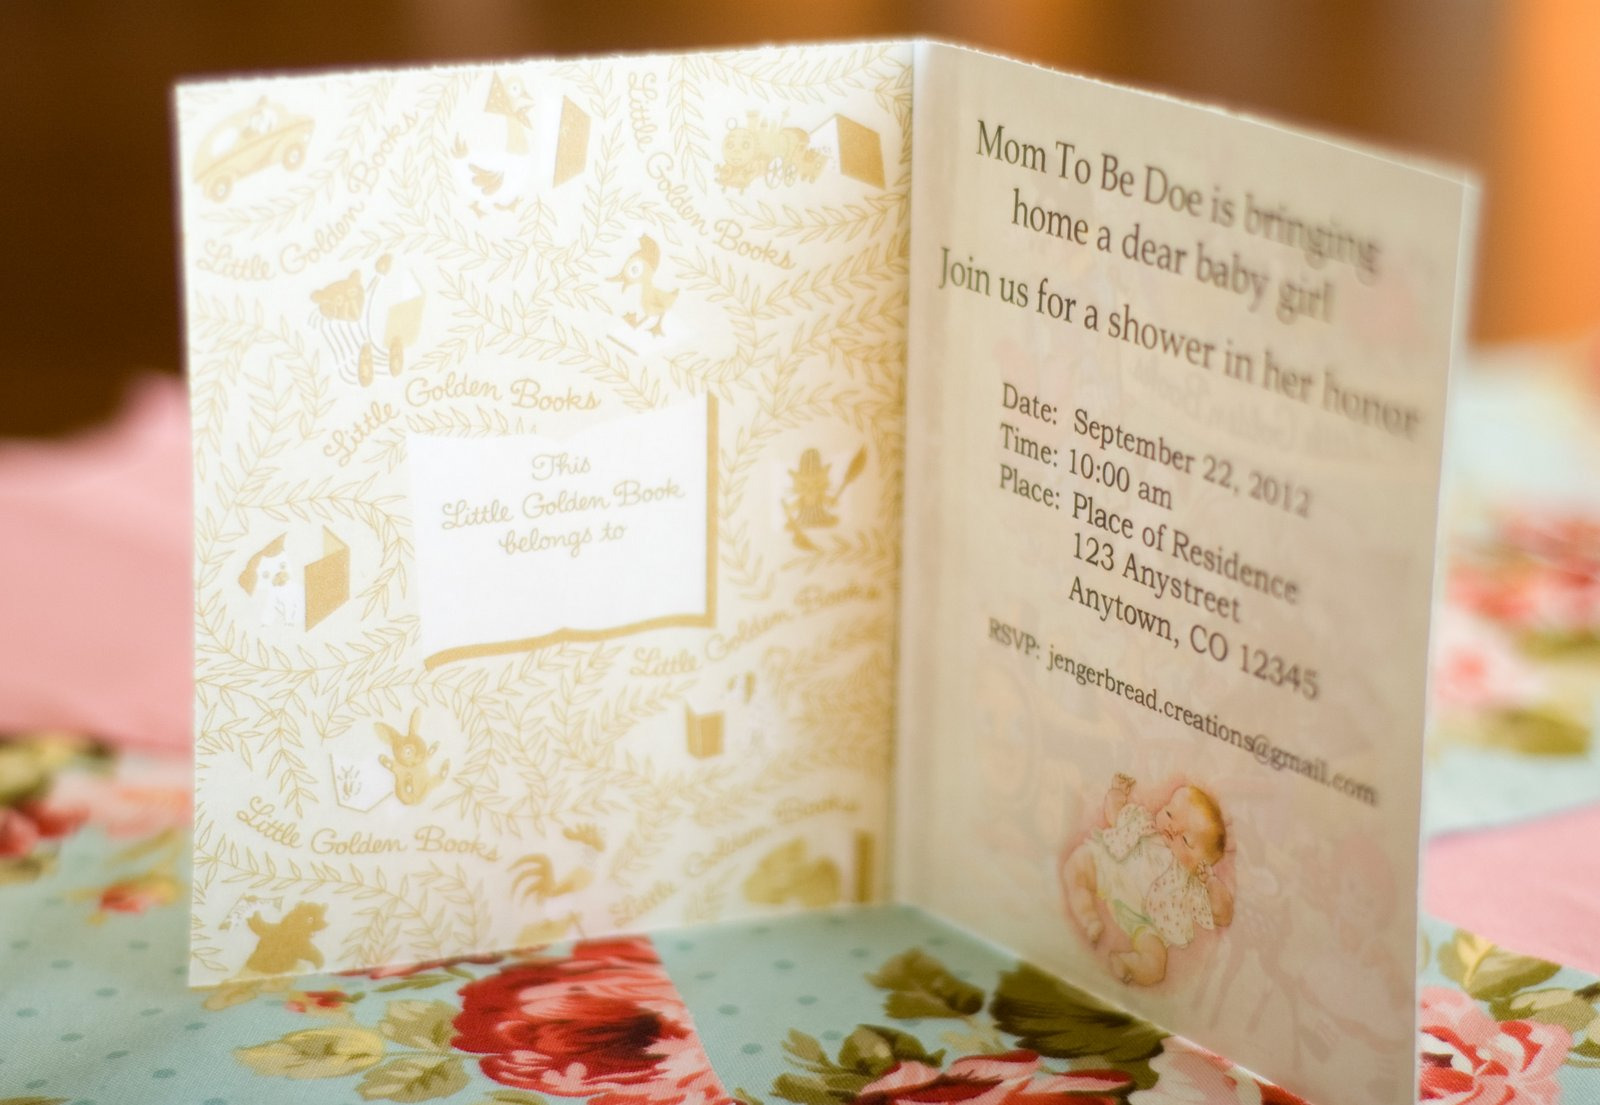 Jengerbread Creations: Baby Dear Baby Shower: The Invitations